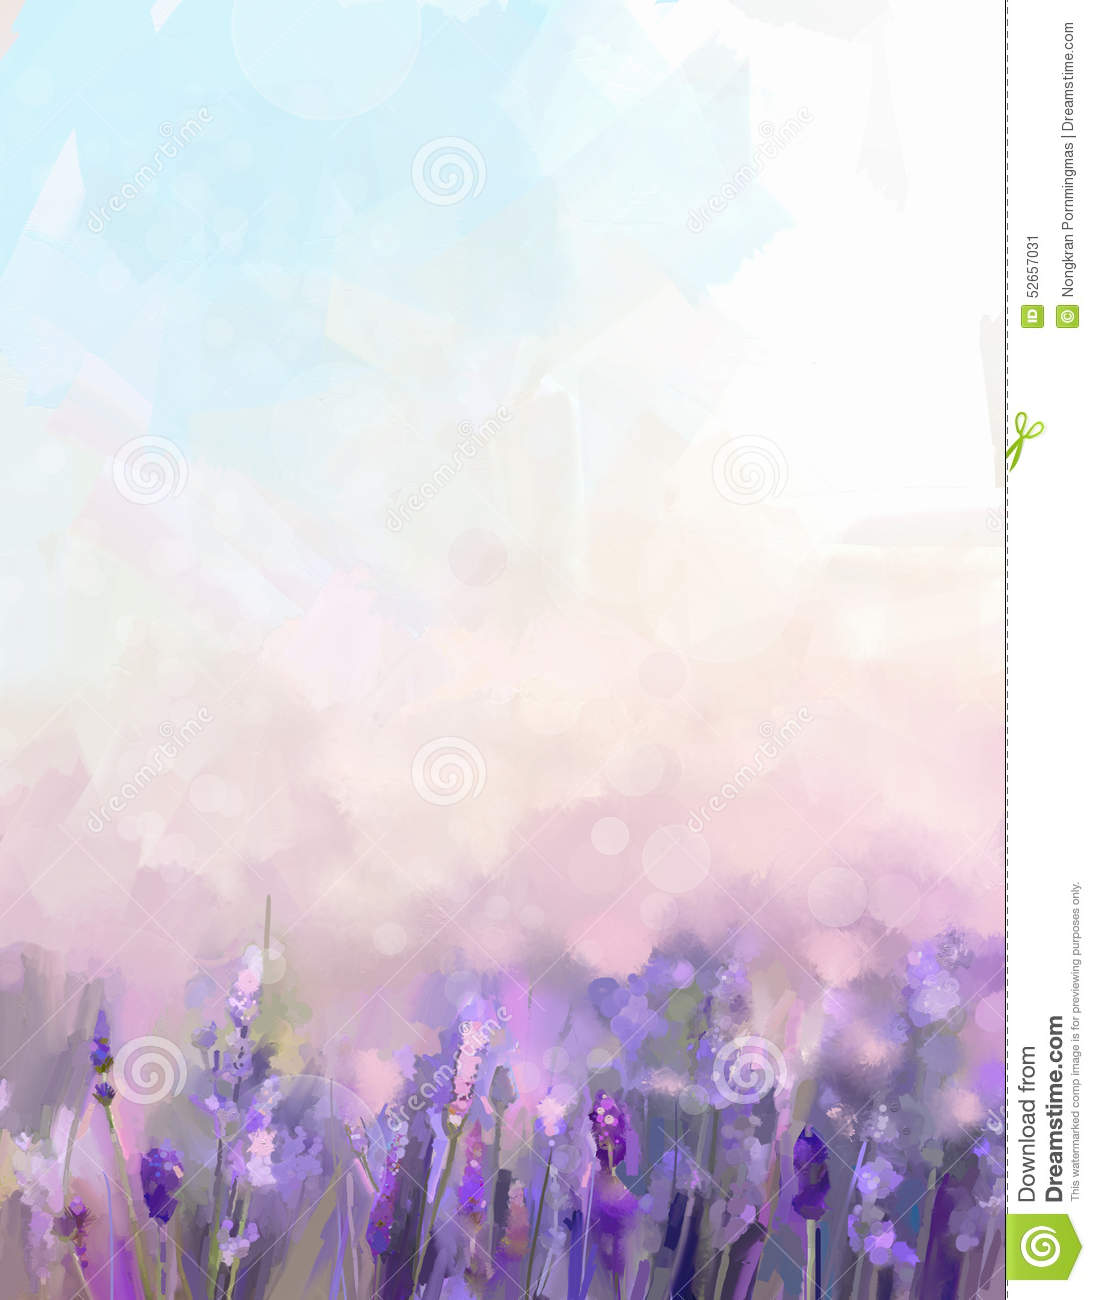 light lavender color background